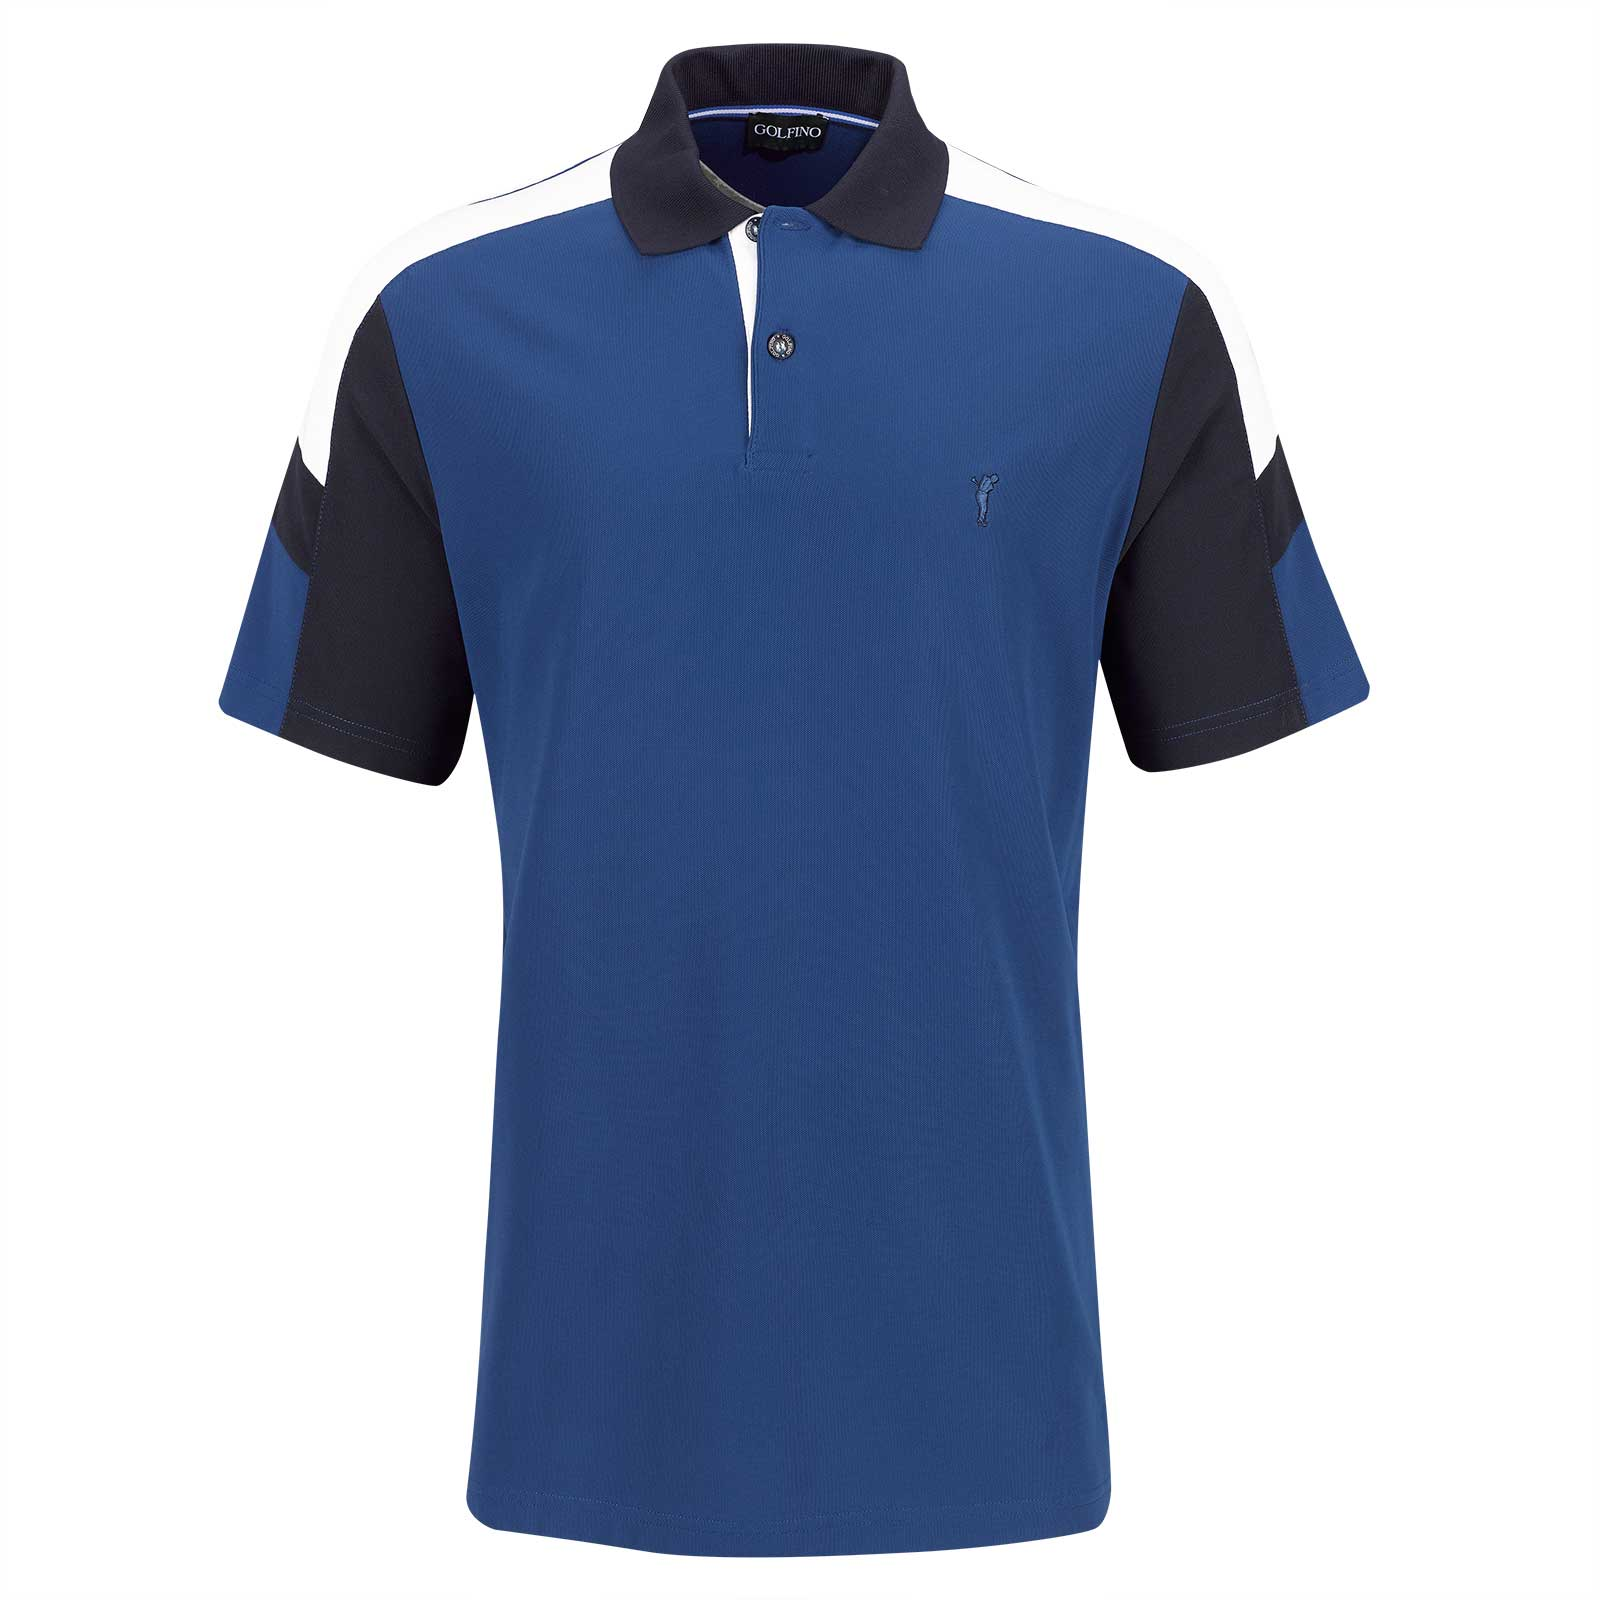 Men's short-sleeve functional golf polo with Moisture Management in Pro Look